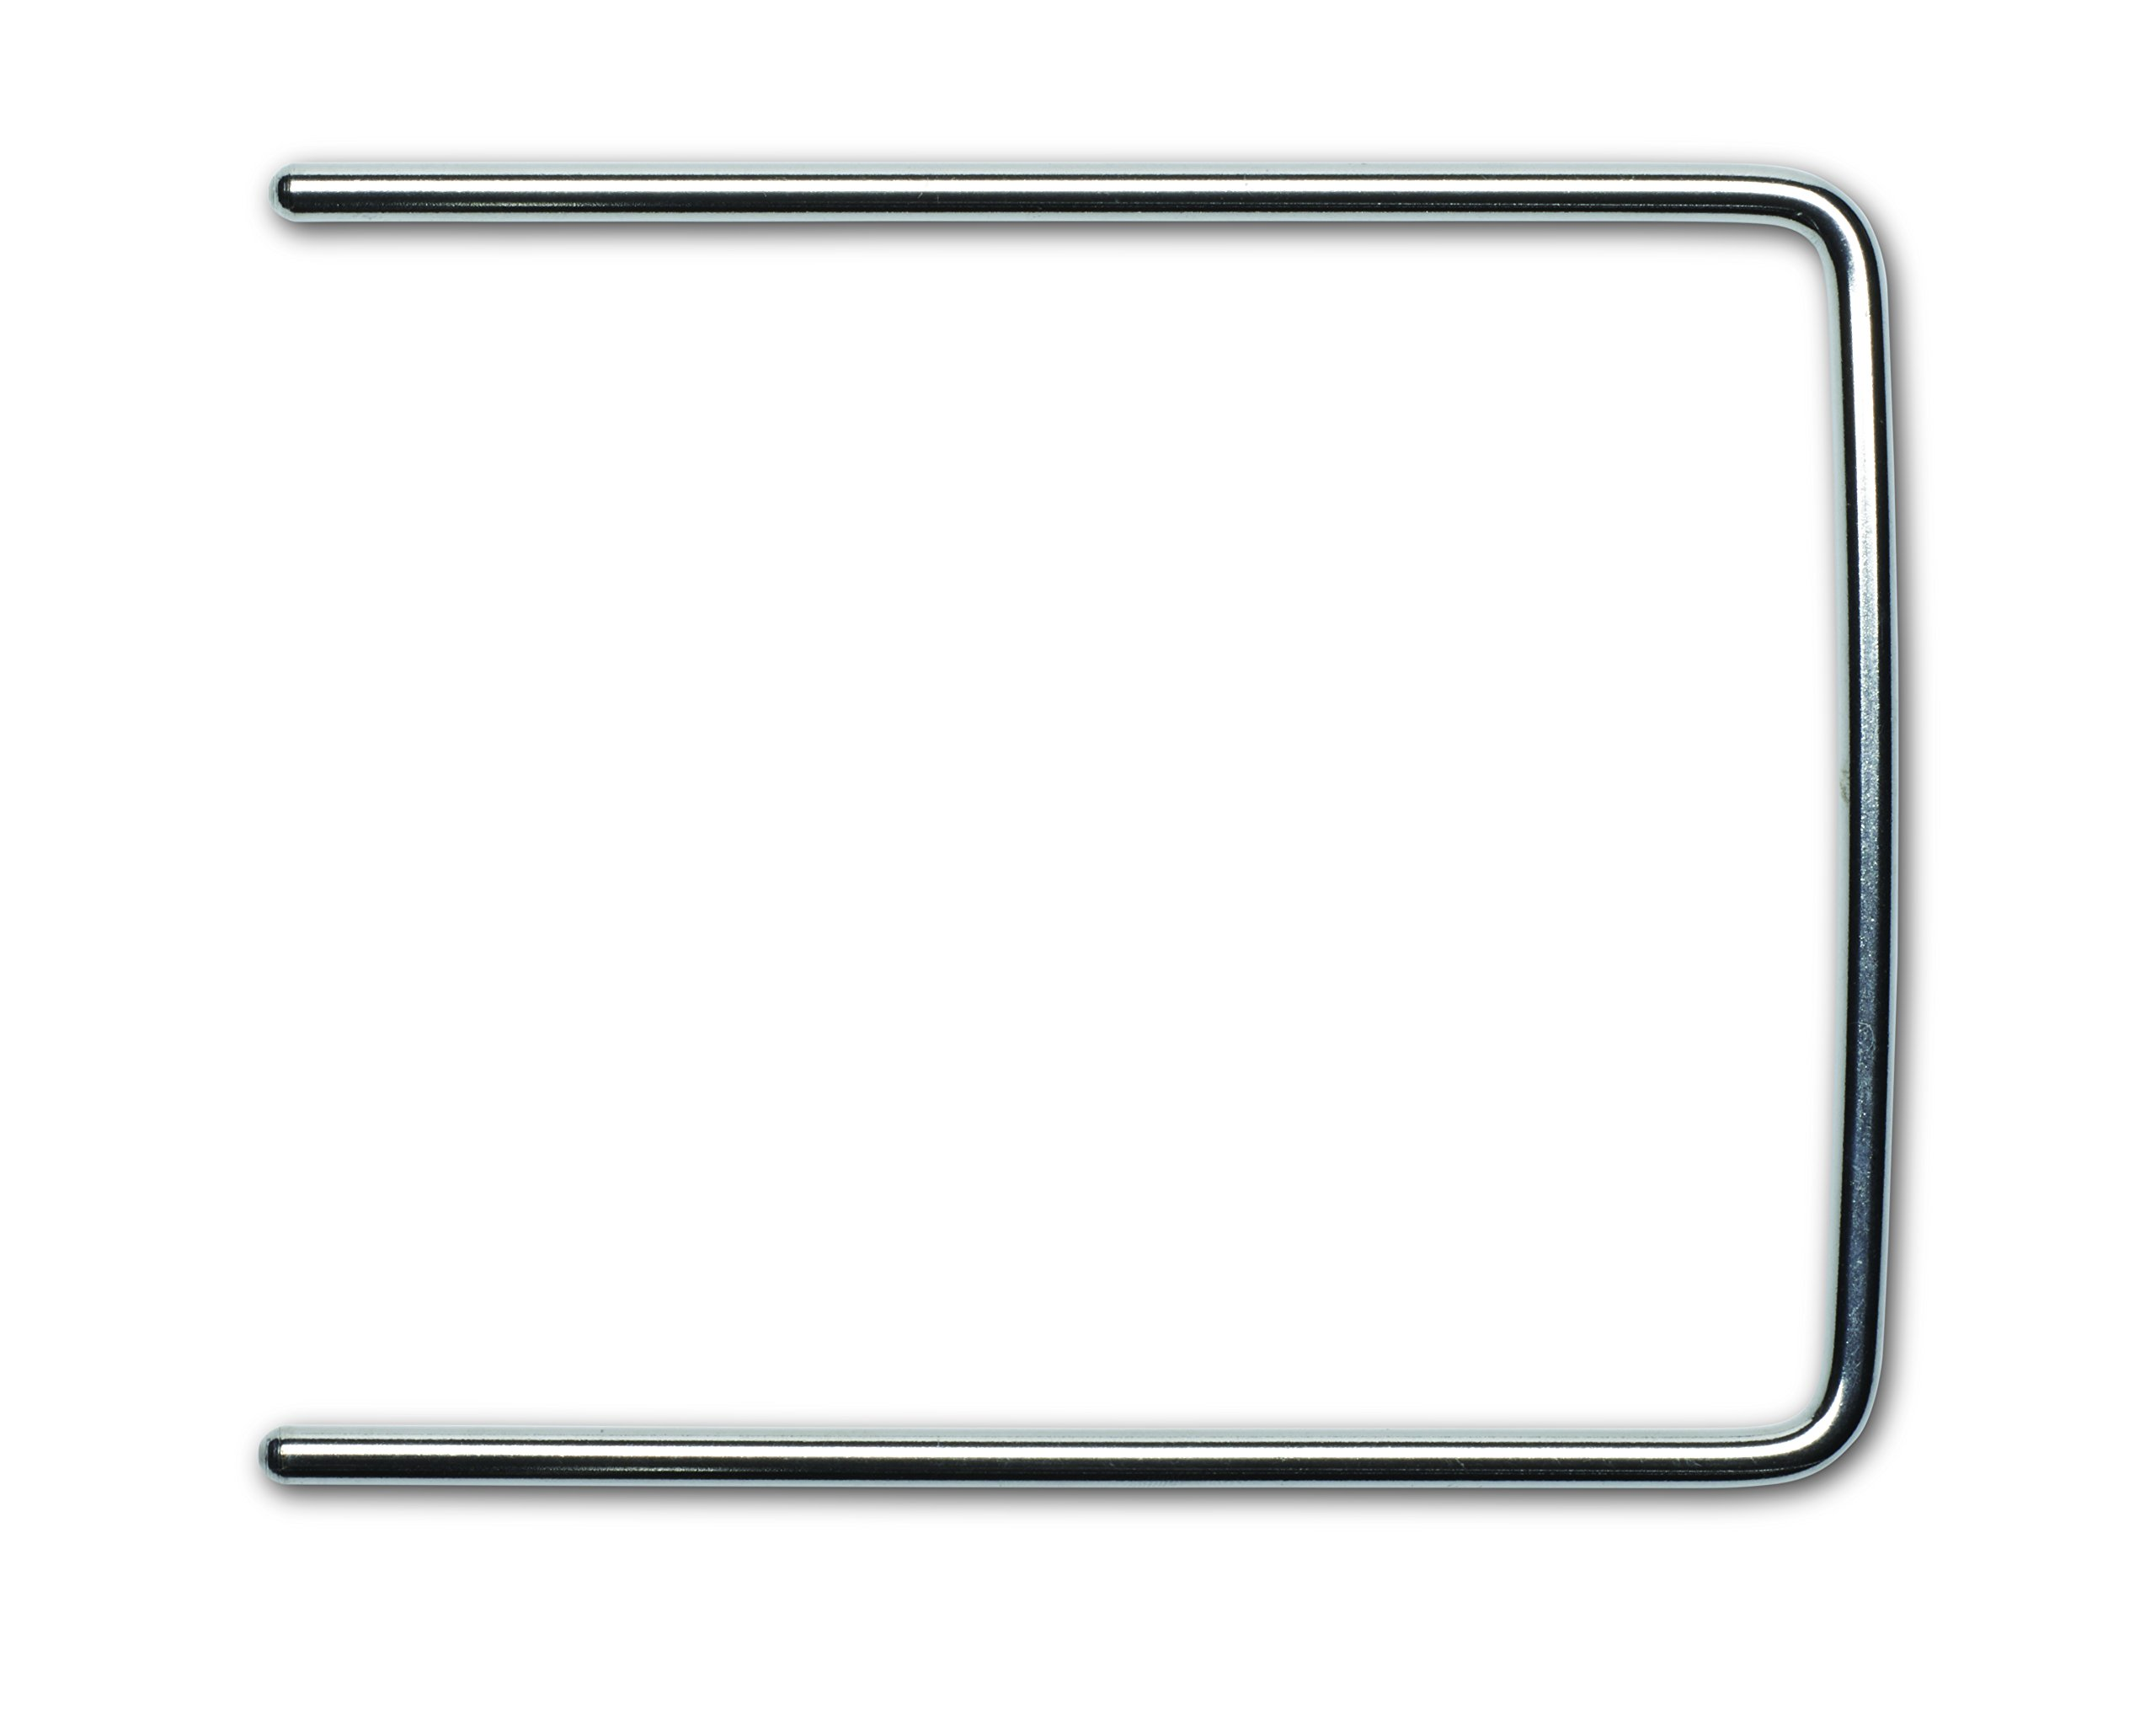 Key Surgical IS-55506 Instrument Stringer, U-Shaped, Stainless Steel, 6'' x 5.5''